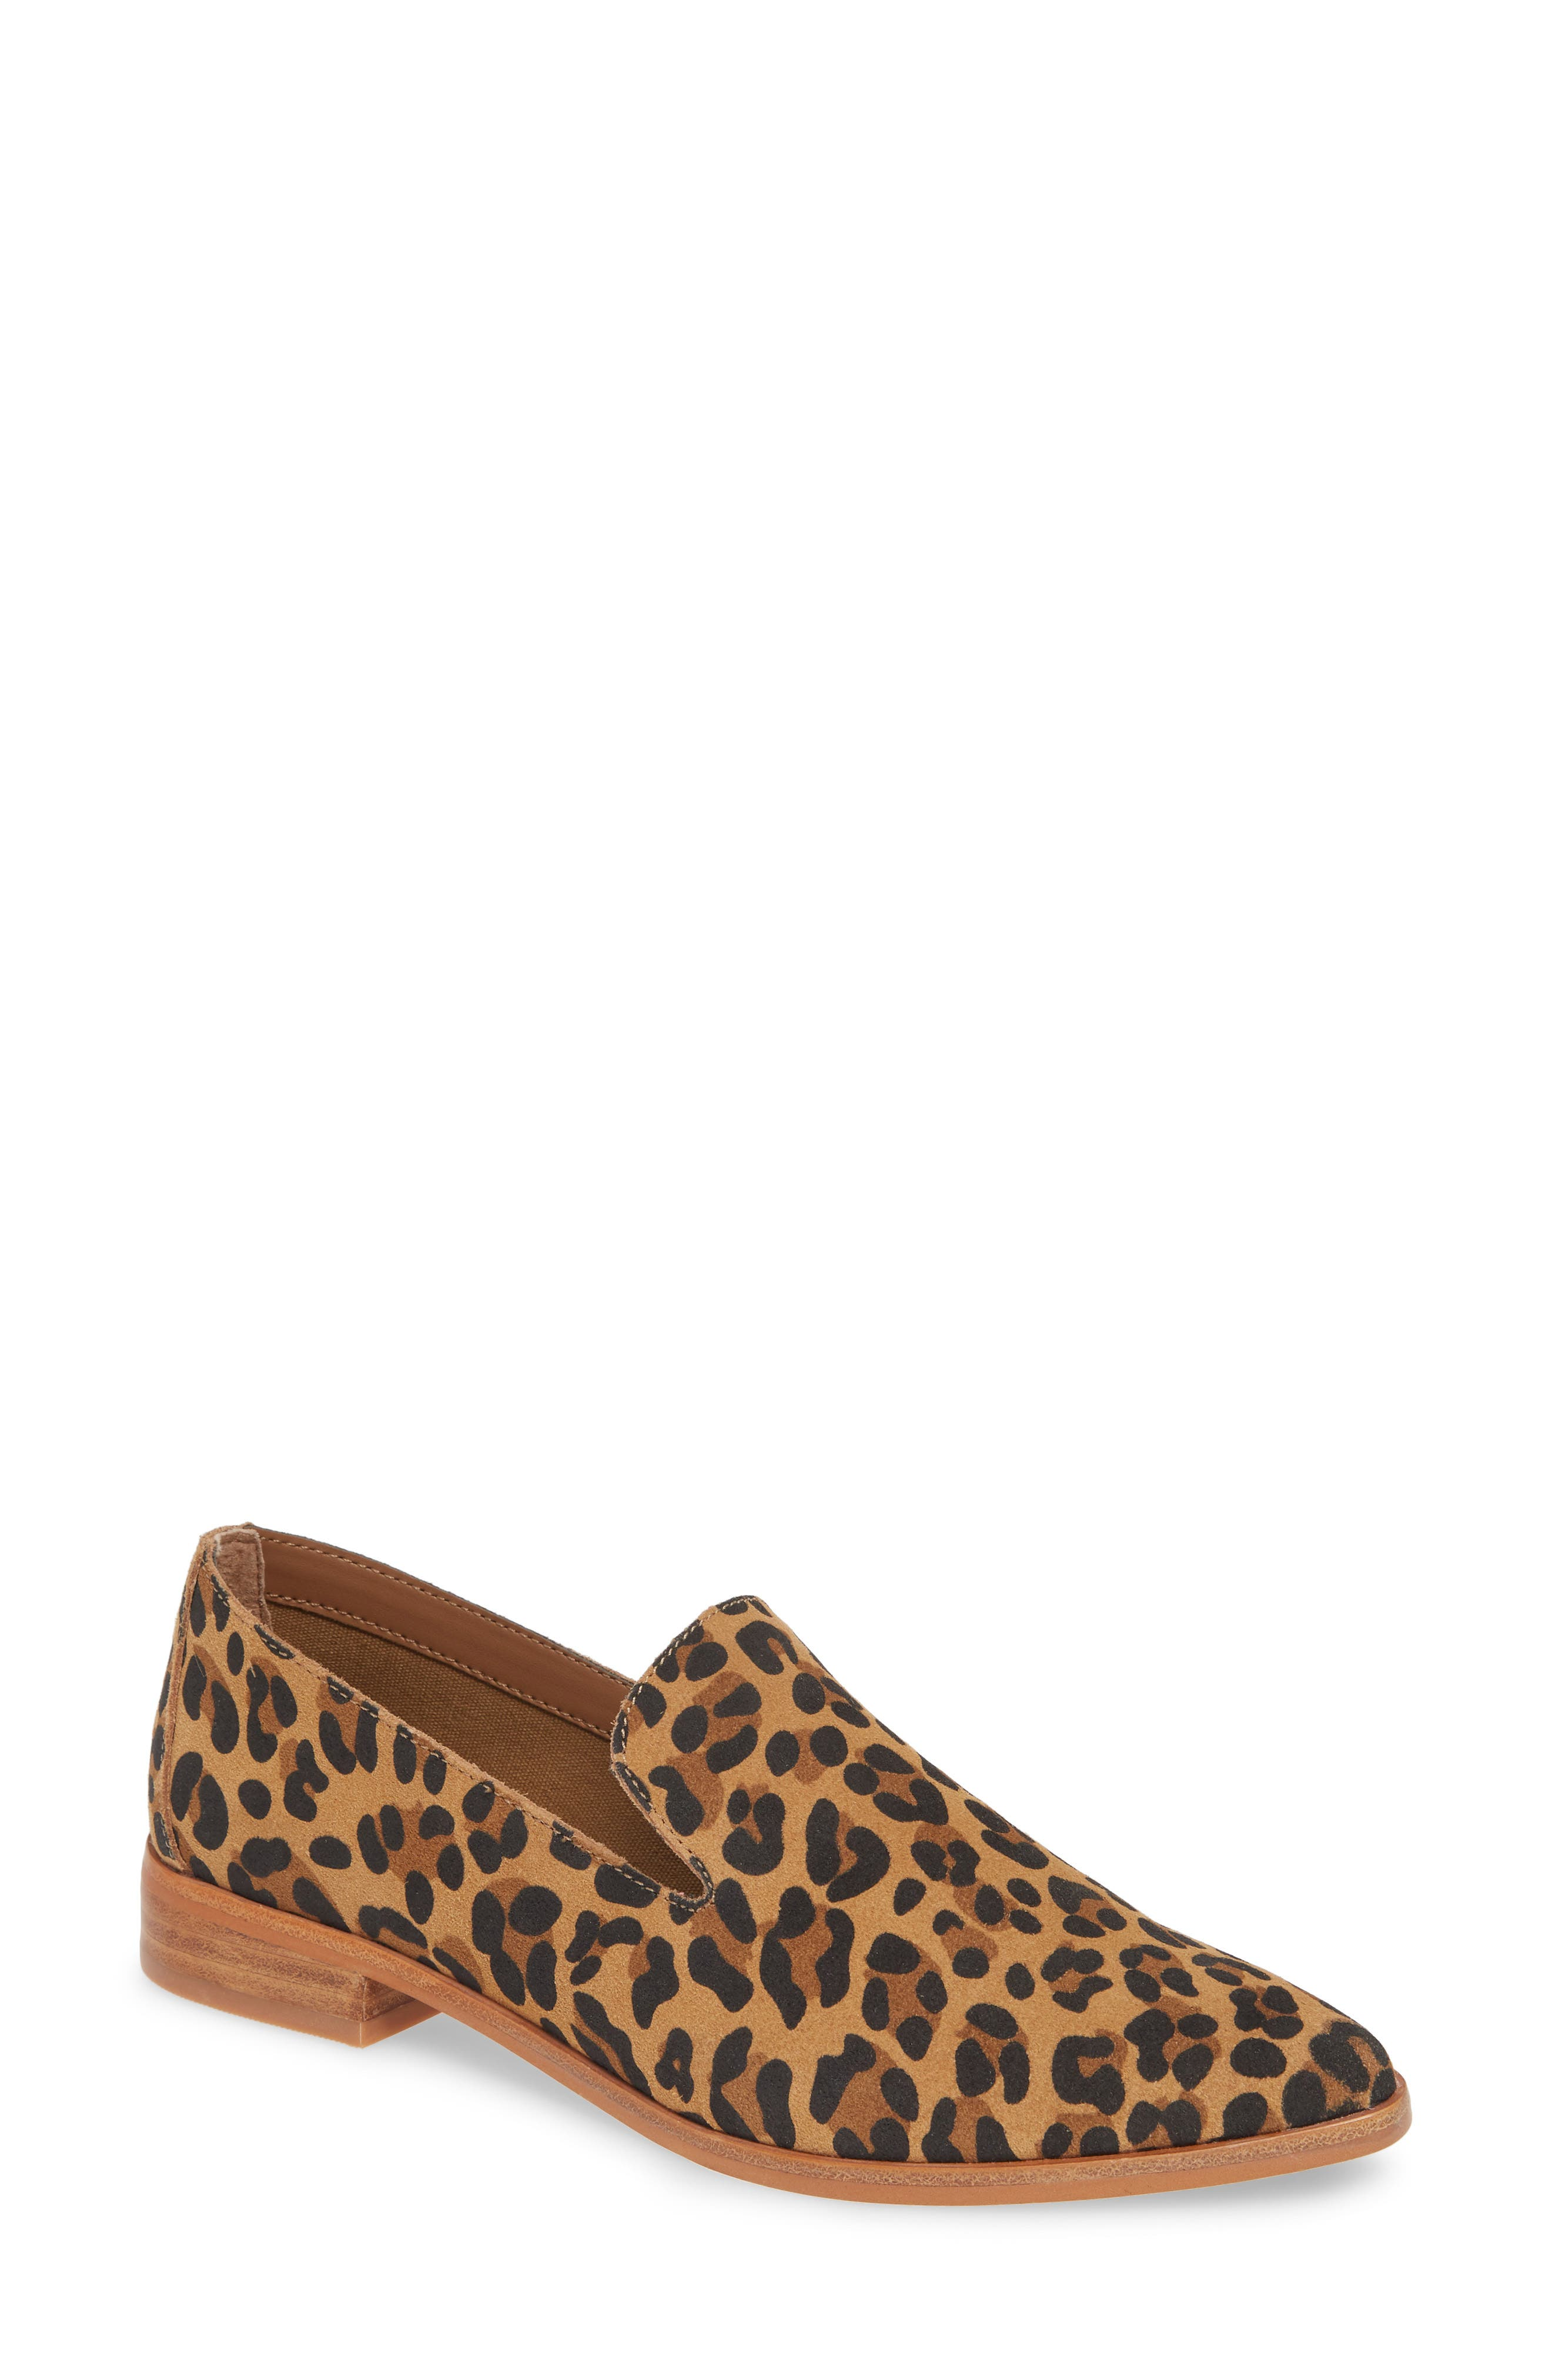 ,                             Kena Loafer,                             Main thumbnail 1, color,                             LEOPARD PRINT SUEDE